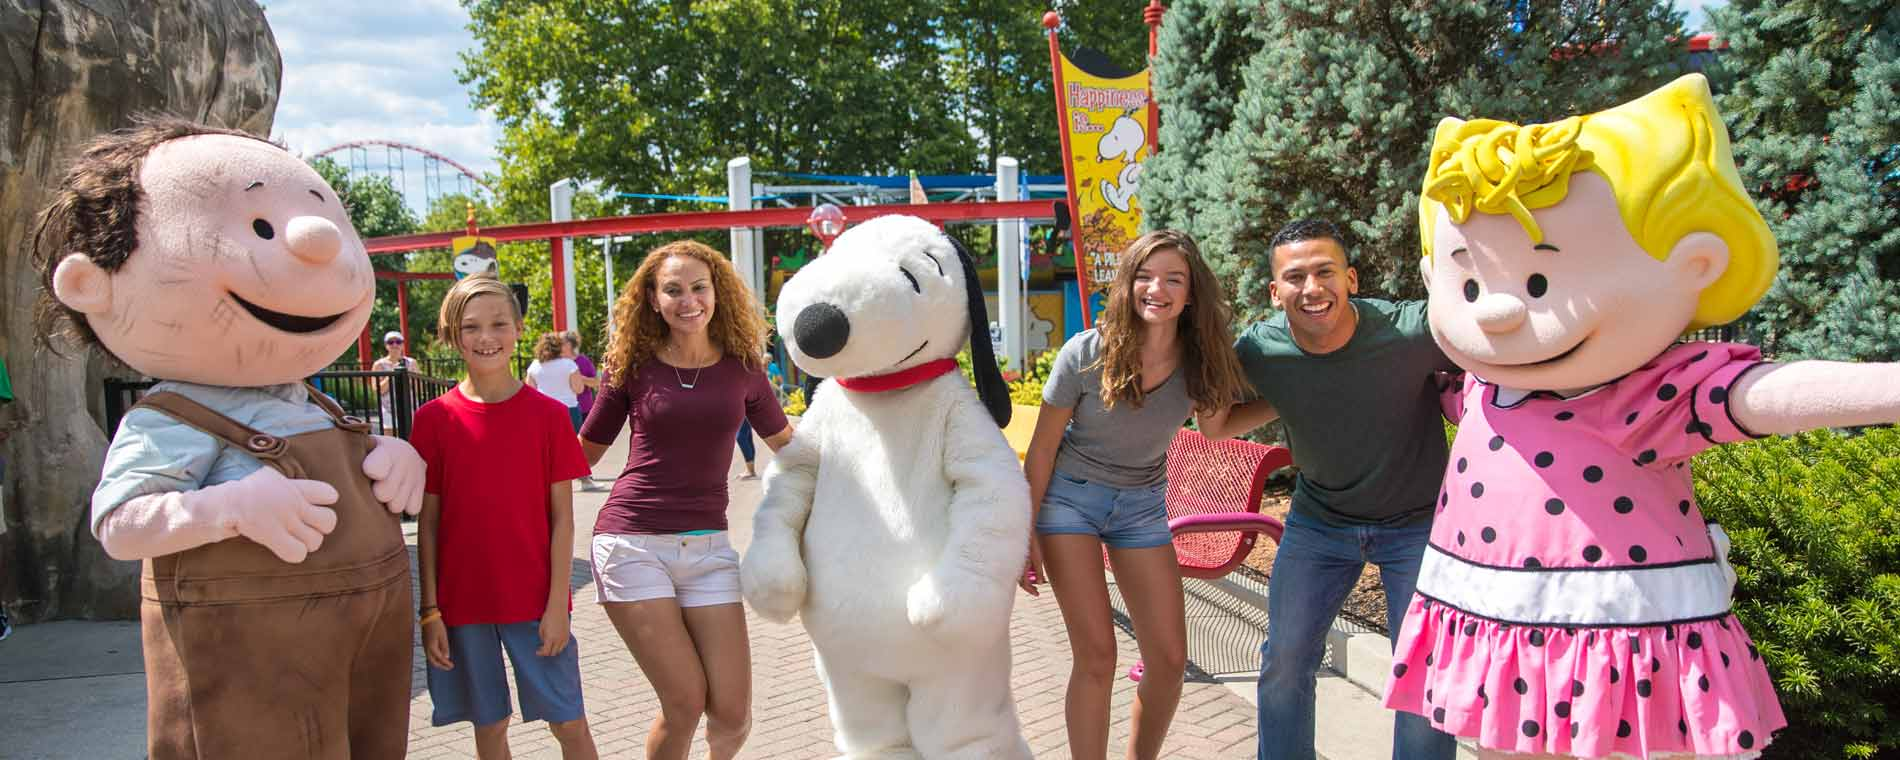 Season Pass Character Breakfasts at Dorney Park